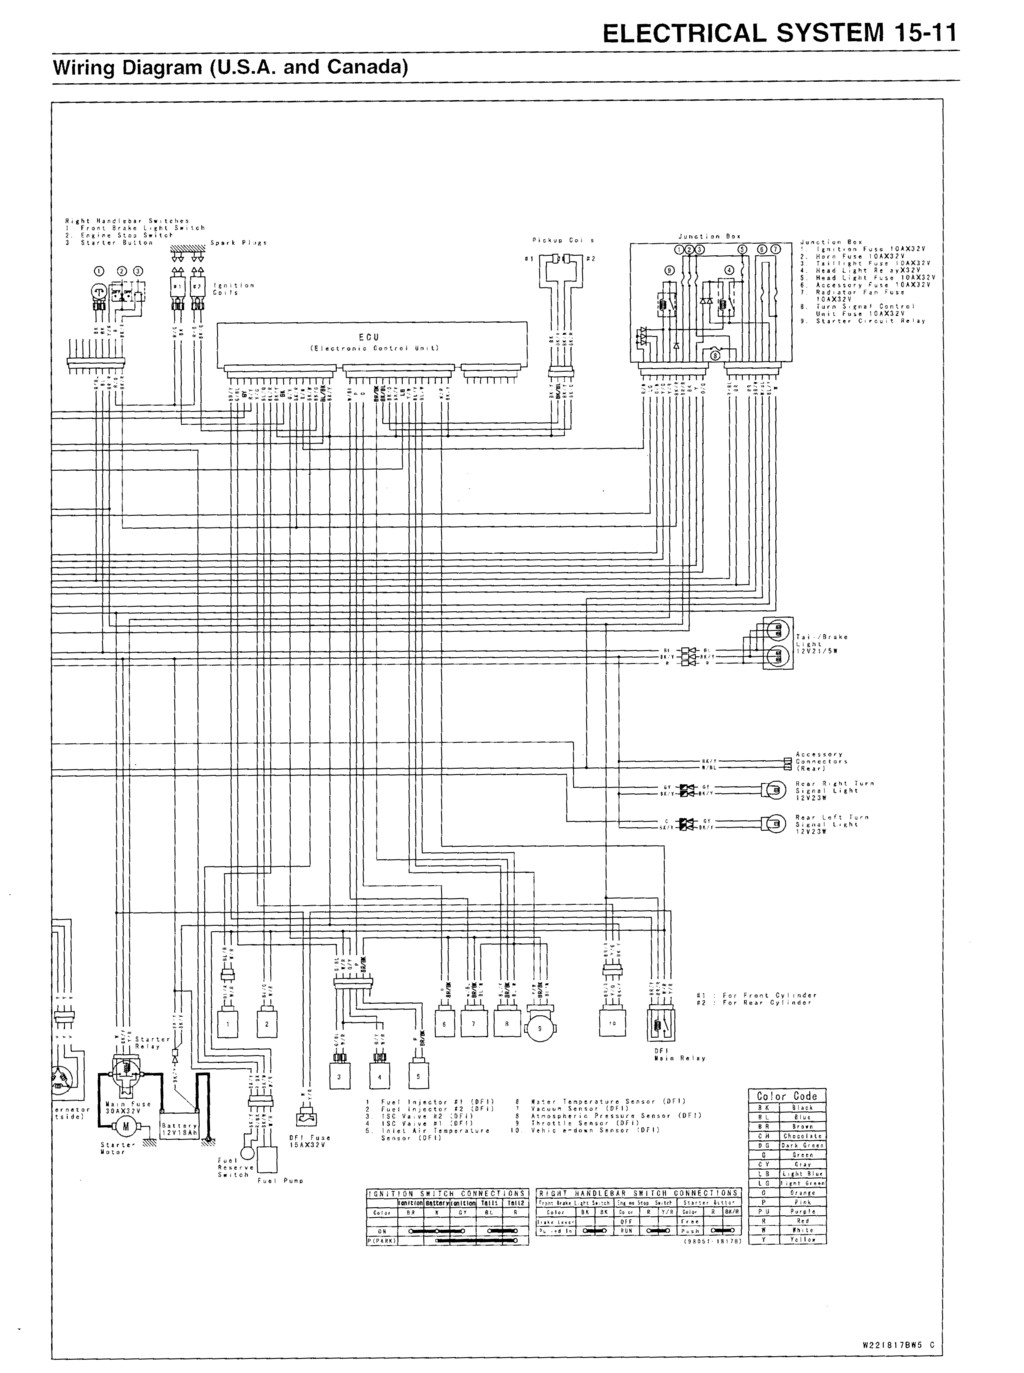 nomad_wiring_diagram_carbed_p2 vulcan wiring diagrams gadget's fixit page Kawasaki Vulcan 1500 Wiring Diagram at gsmx.co